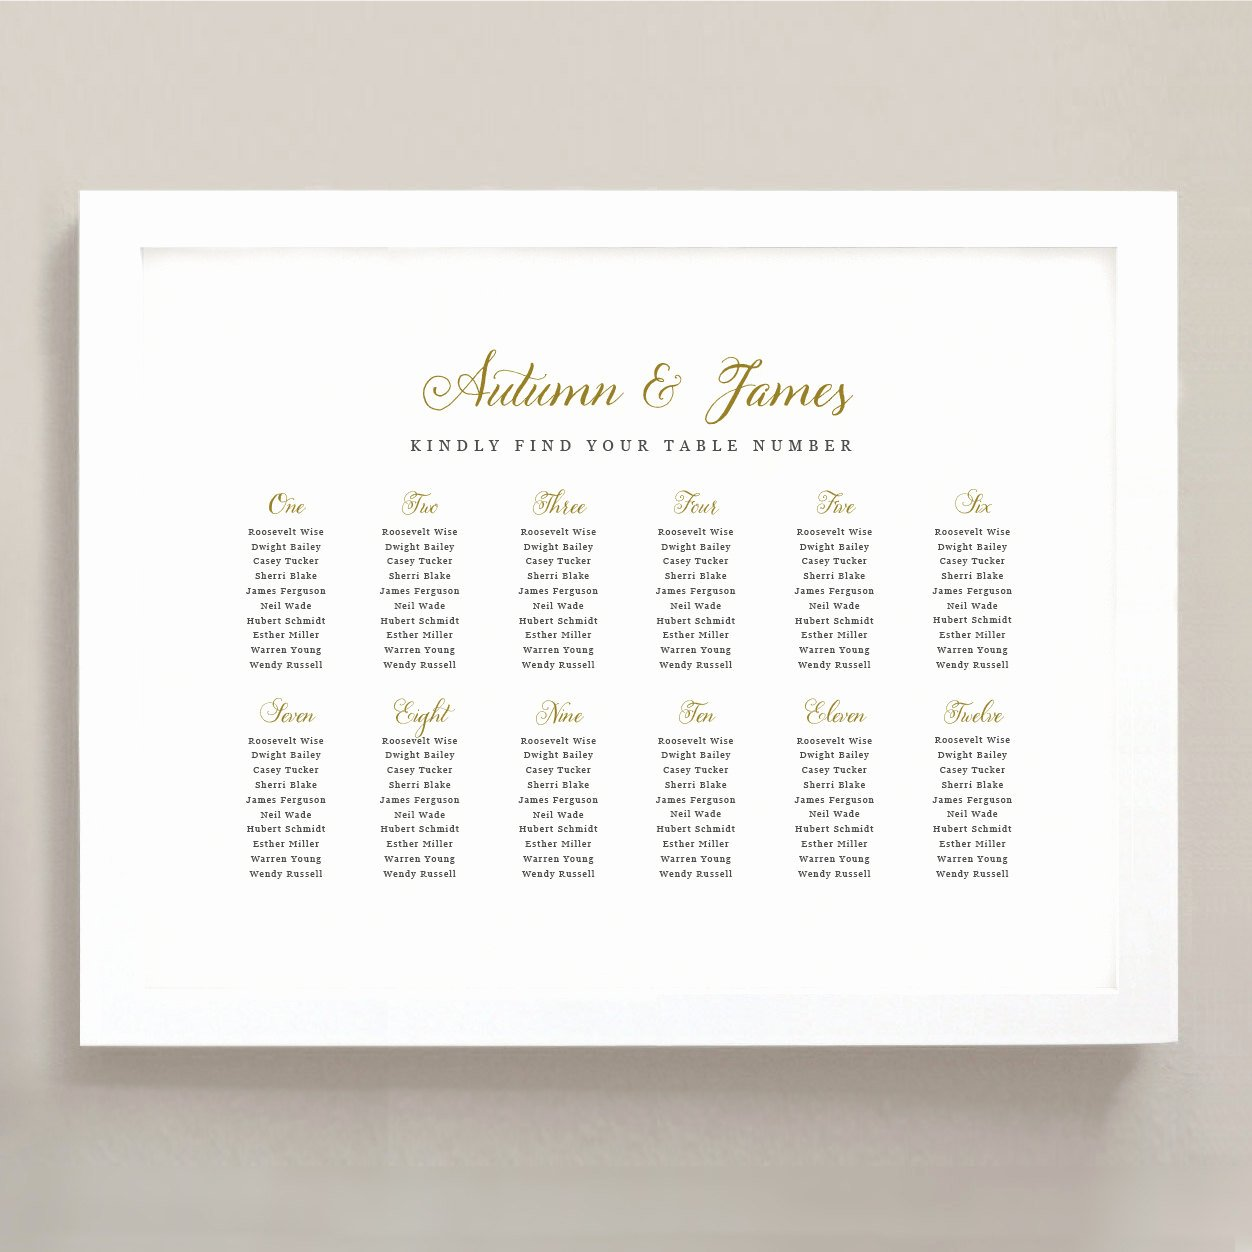 Seating Chart Poster Template Unique Printable Seating Chart Poster Template Romantic Script Word